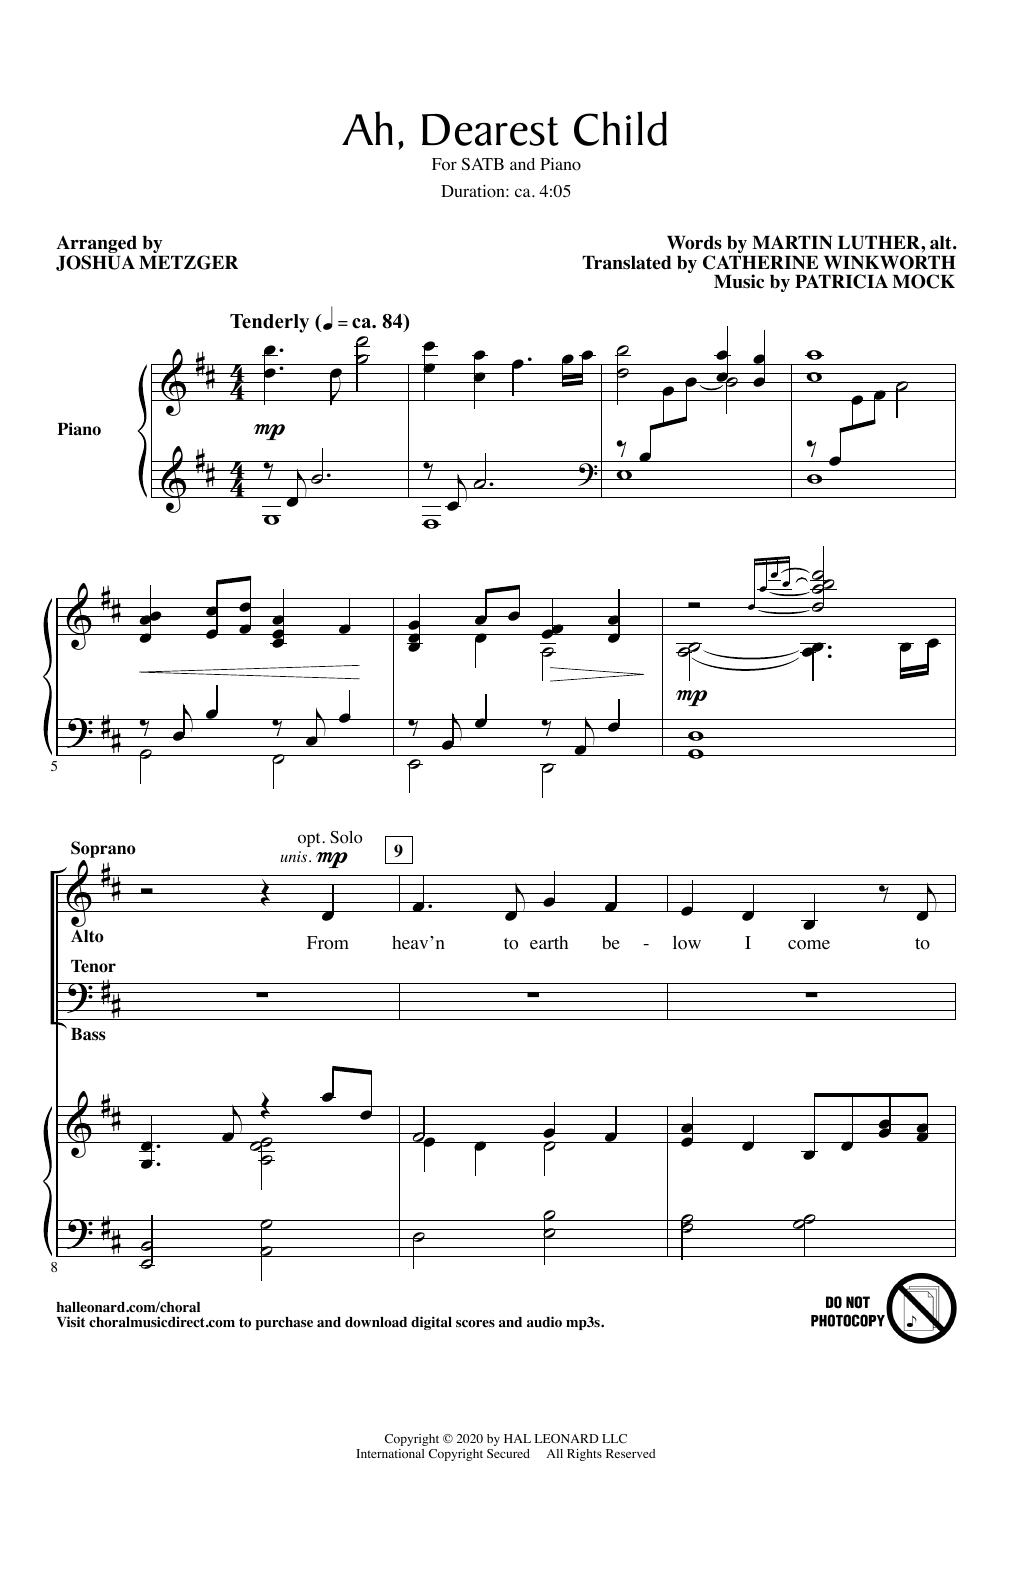 Martin Luther and Patricia Mock Ah, Dearest Child (arr. Joshua Metzger) sheet music notes and chords. Download Printable PDF.